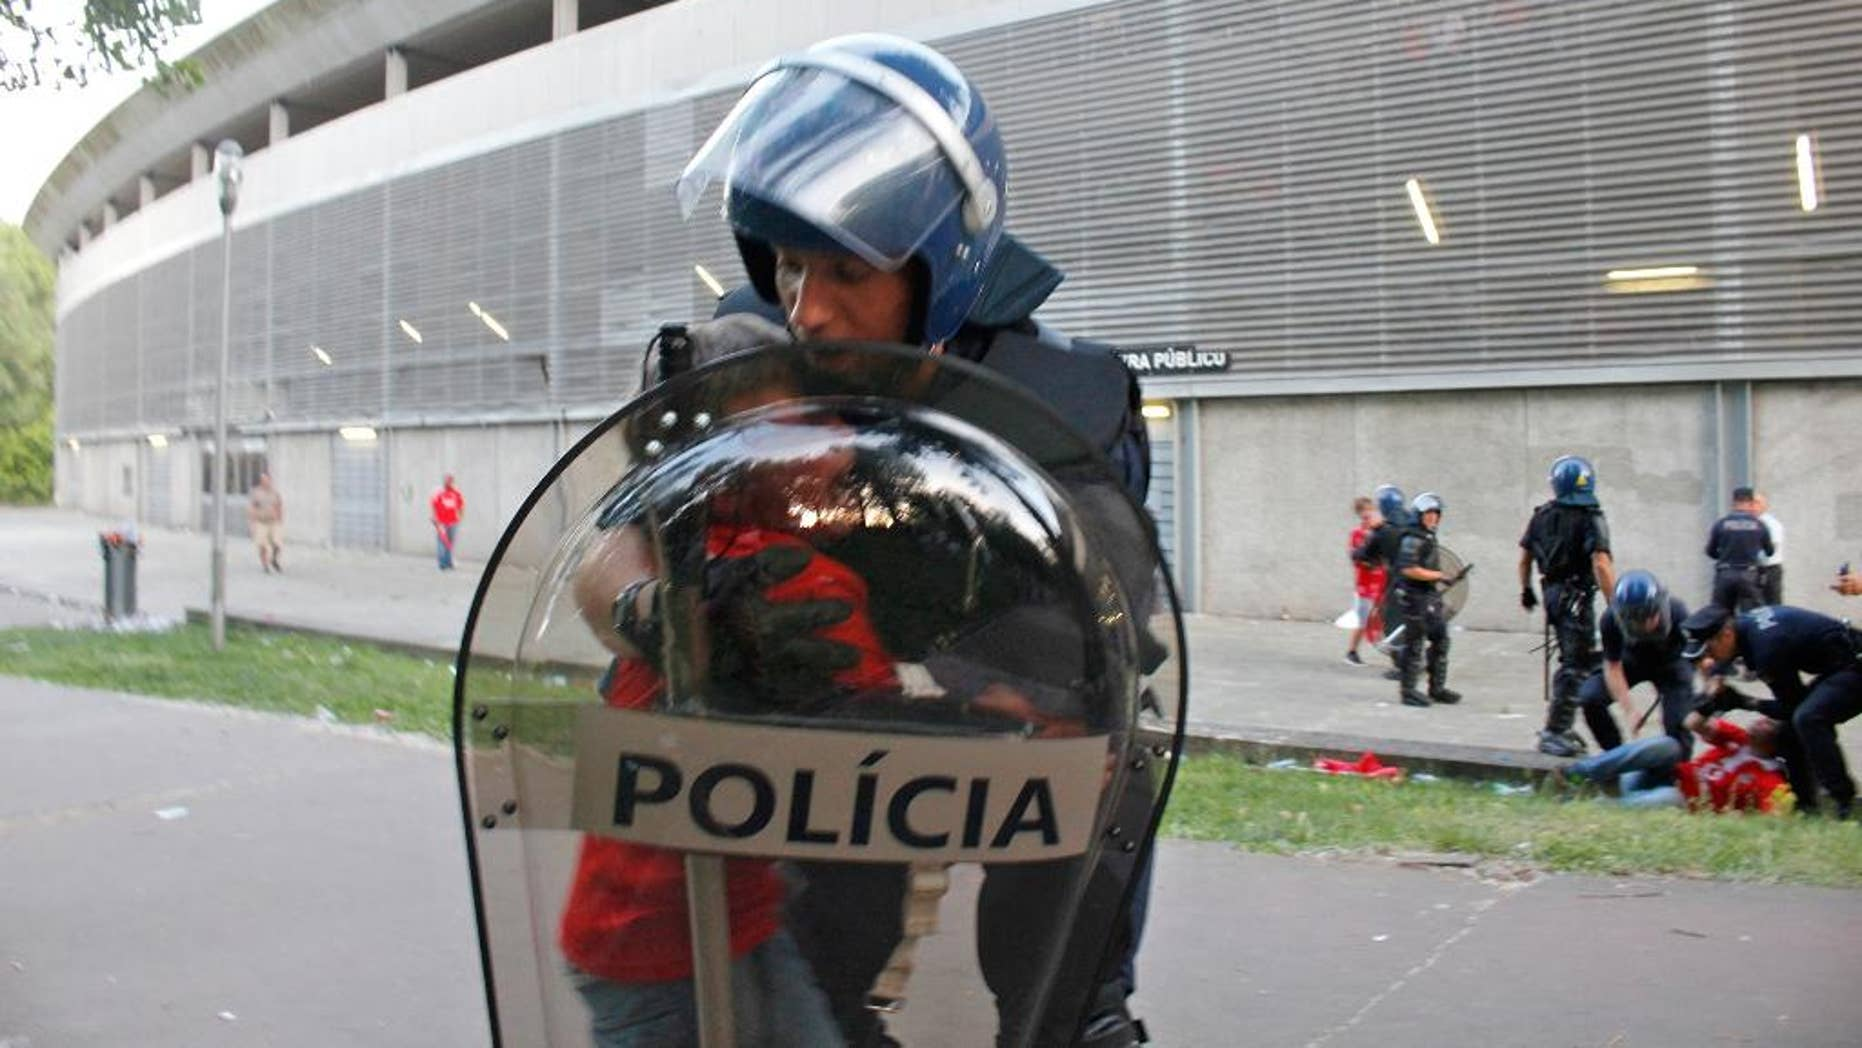 In this May 17 2015 file photo, a riot policeman holds a crying boy as his father is attacked by other policemen with batons, right, outside of a stadium, in Guimaraes, Portugal. Portugal's public prosecutor has filed charges Tuesday April 12, 2016,  that could bring a prison sentence of more than 10 years against a policeman who beat a middle-aged football fan in front of his two young sons, with the video of the incident causing a national scandal. (AP Photo/Delfim Machado)